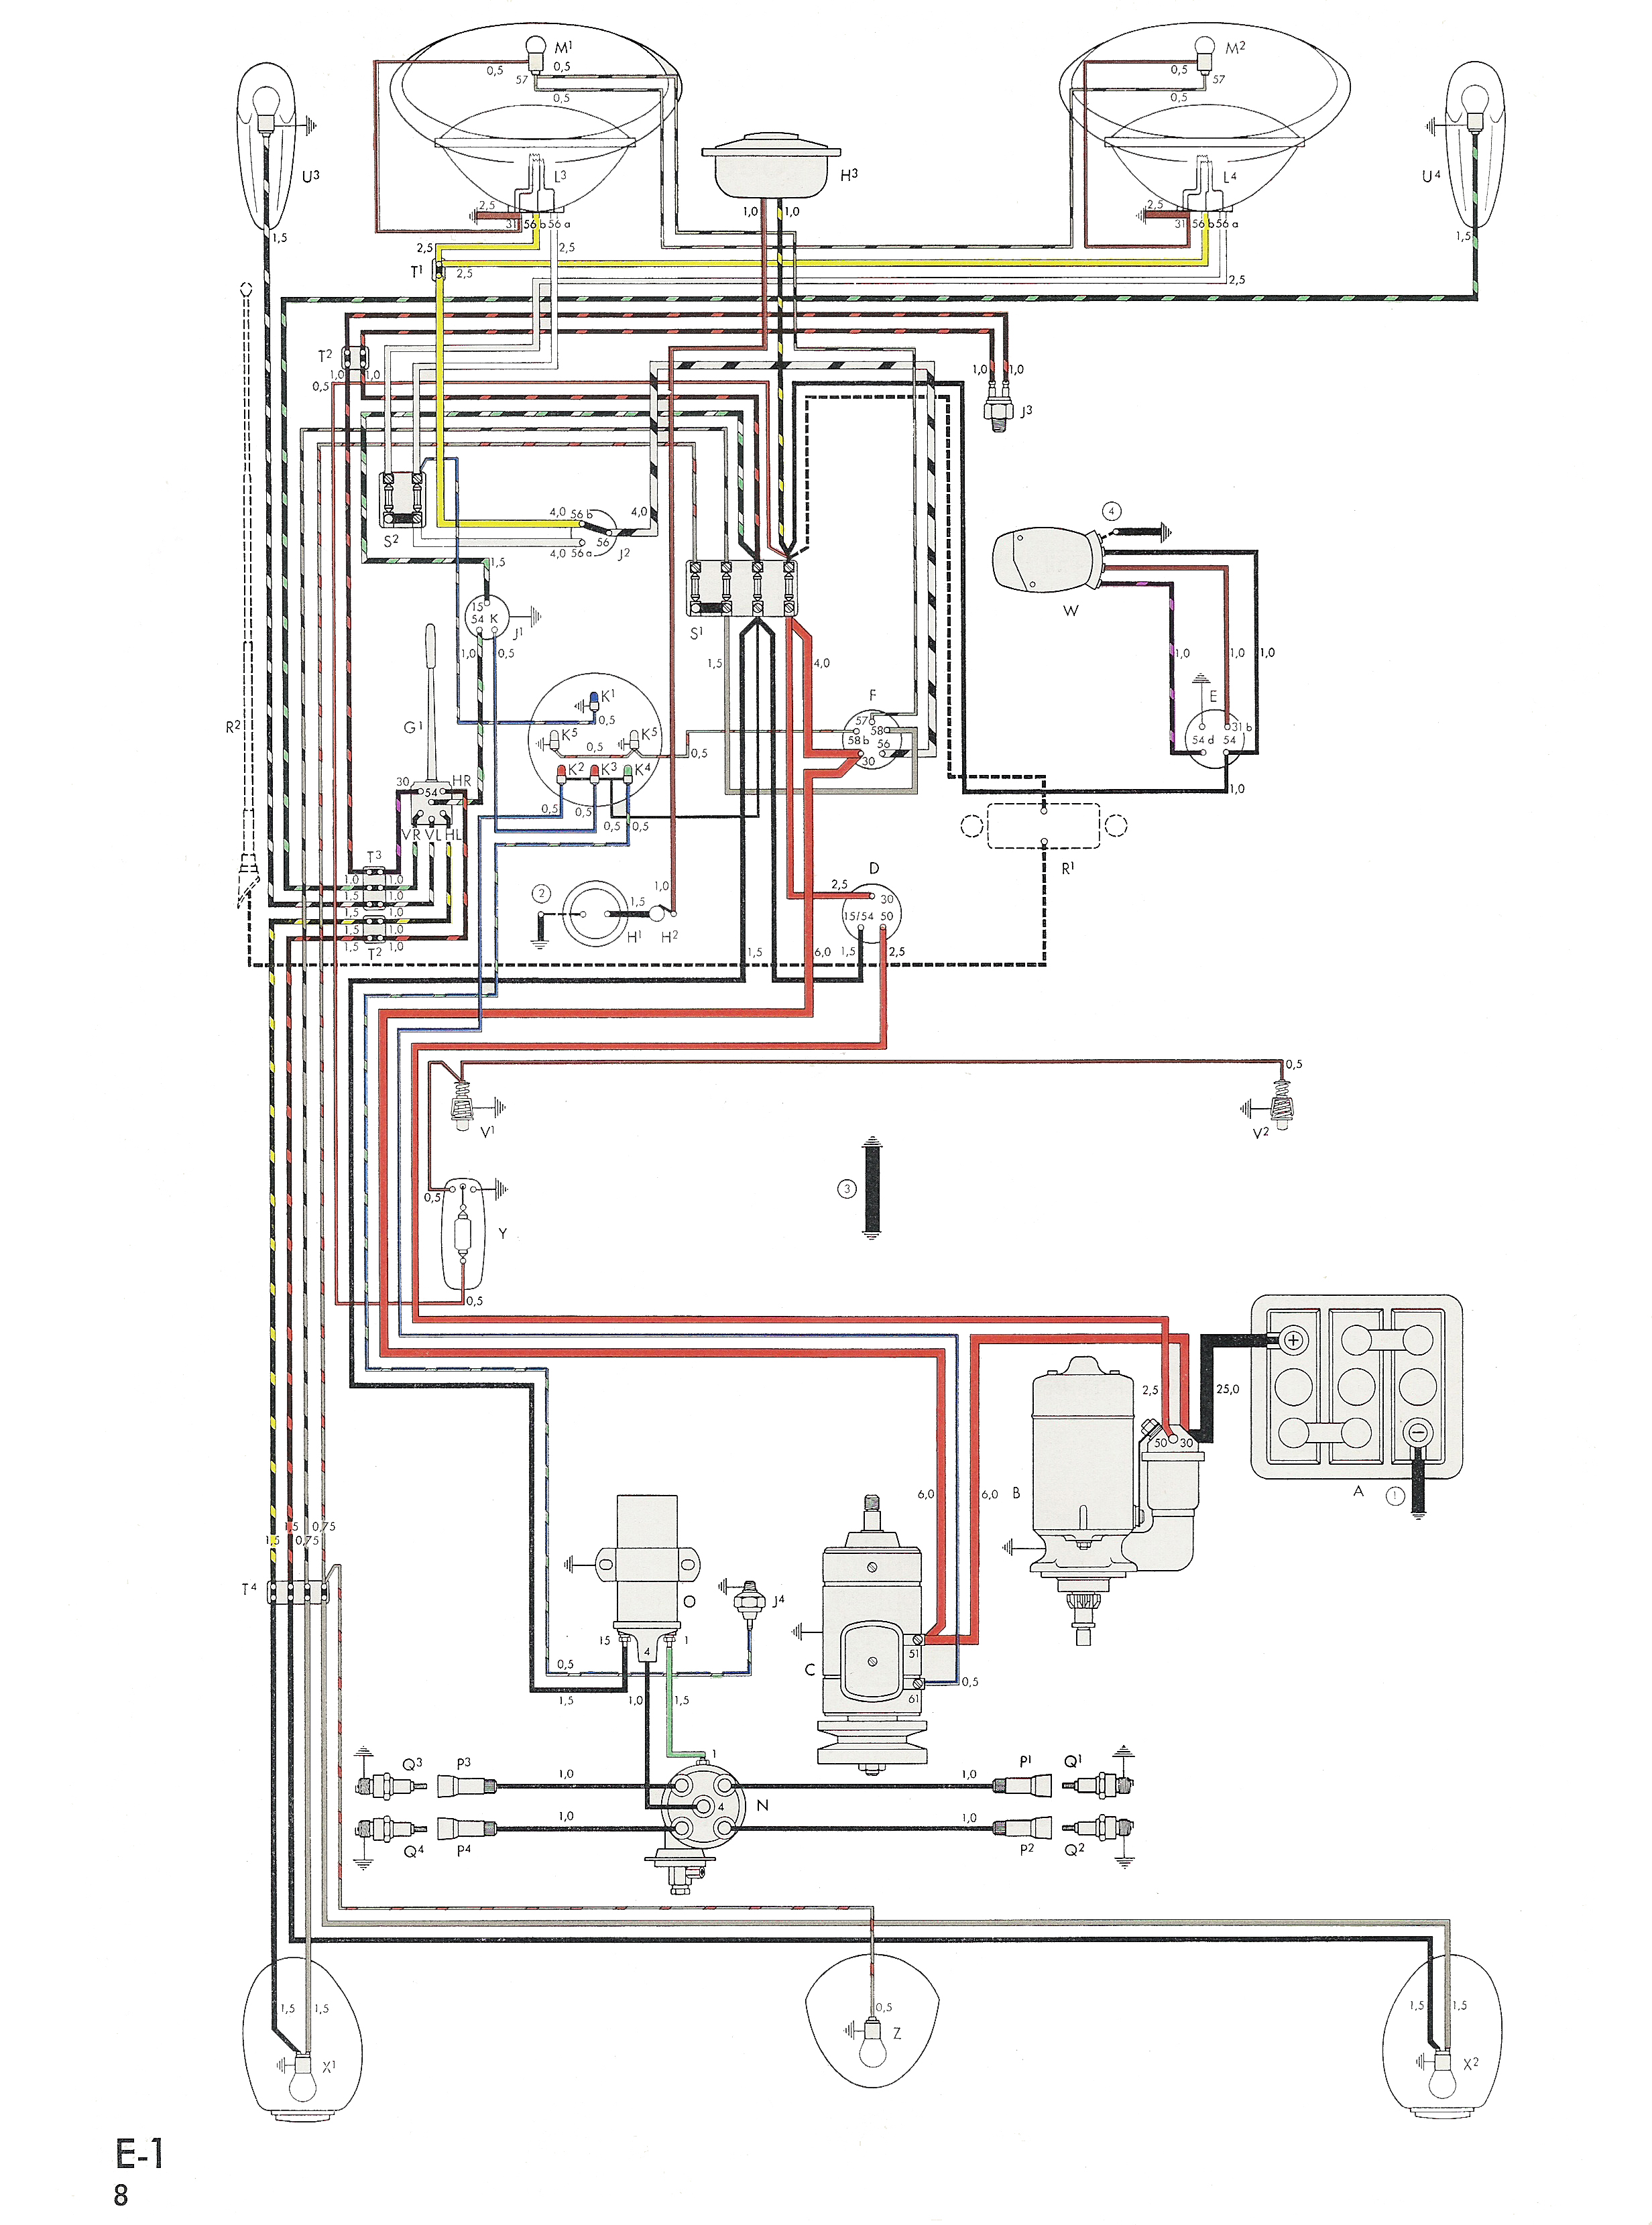 Lincoln Sae 400 Wiring Diagram Libraries Welder Library5 Light